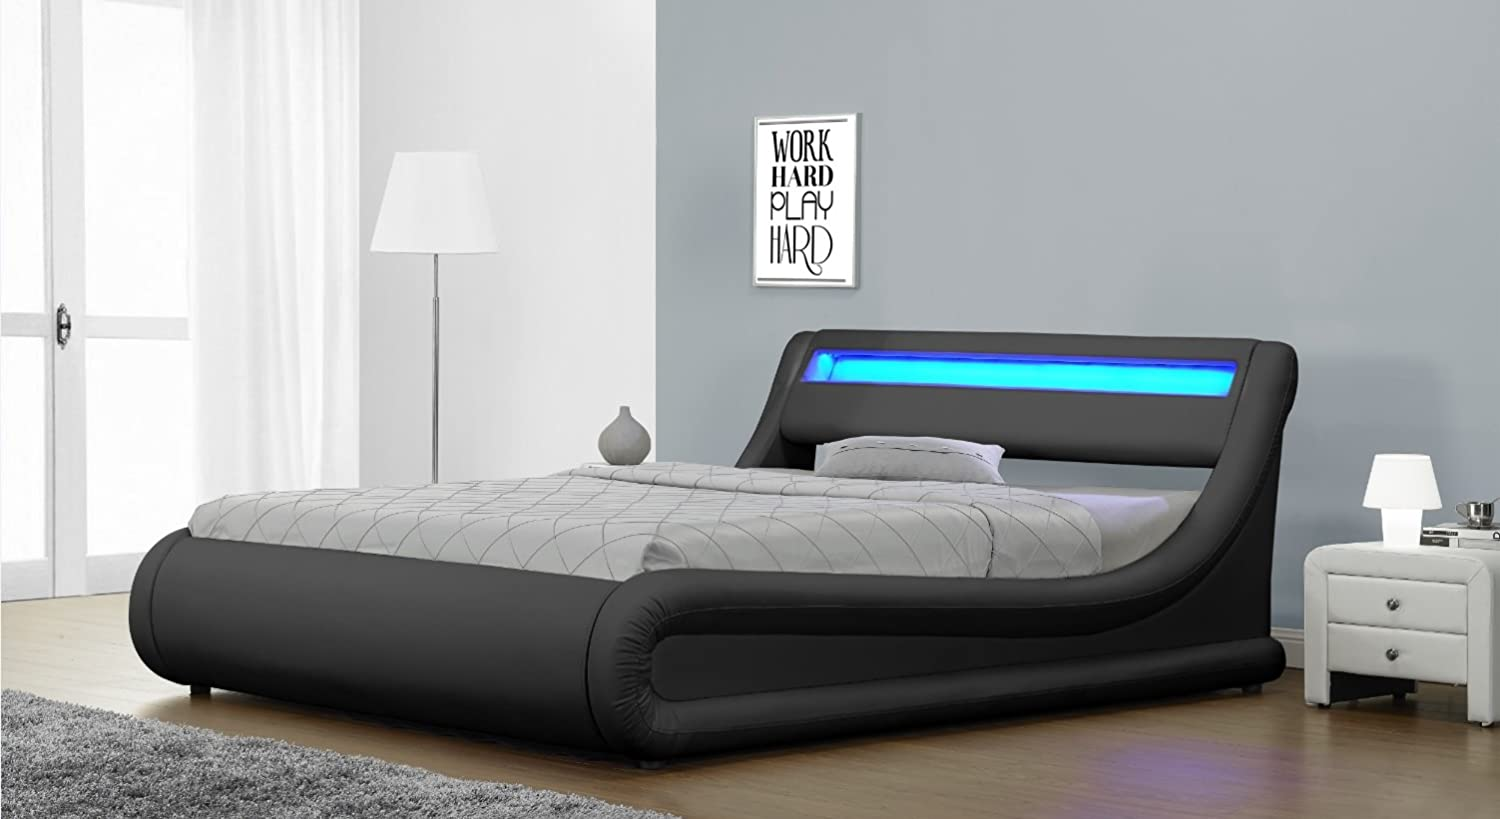 Rio Led Black Designer Curved Ottoman Gas Lift Storage Bed